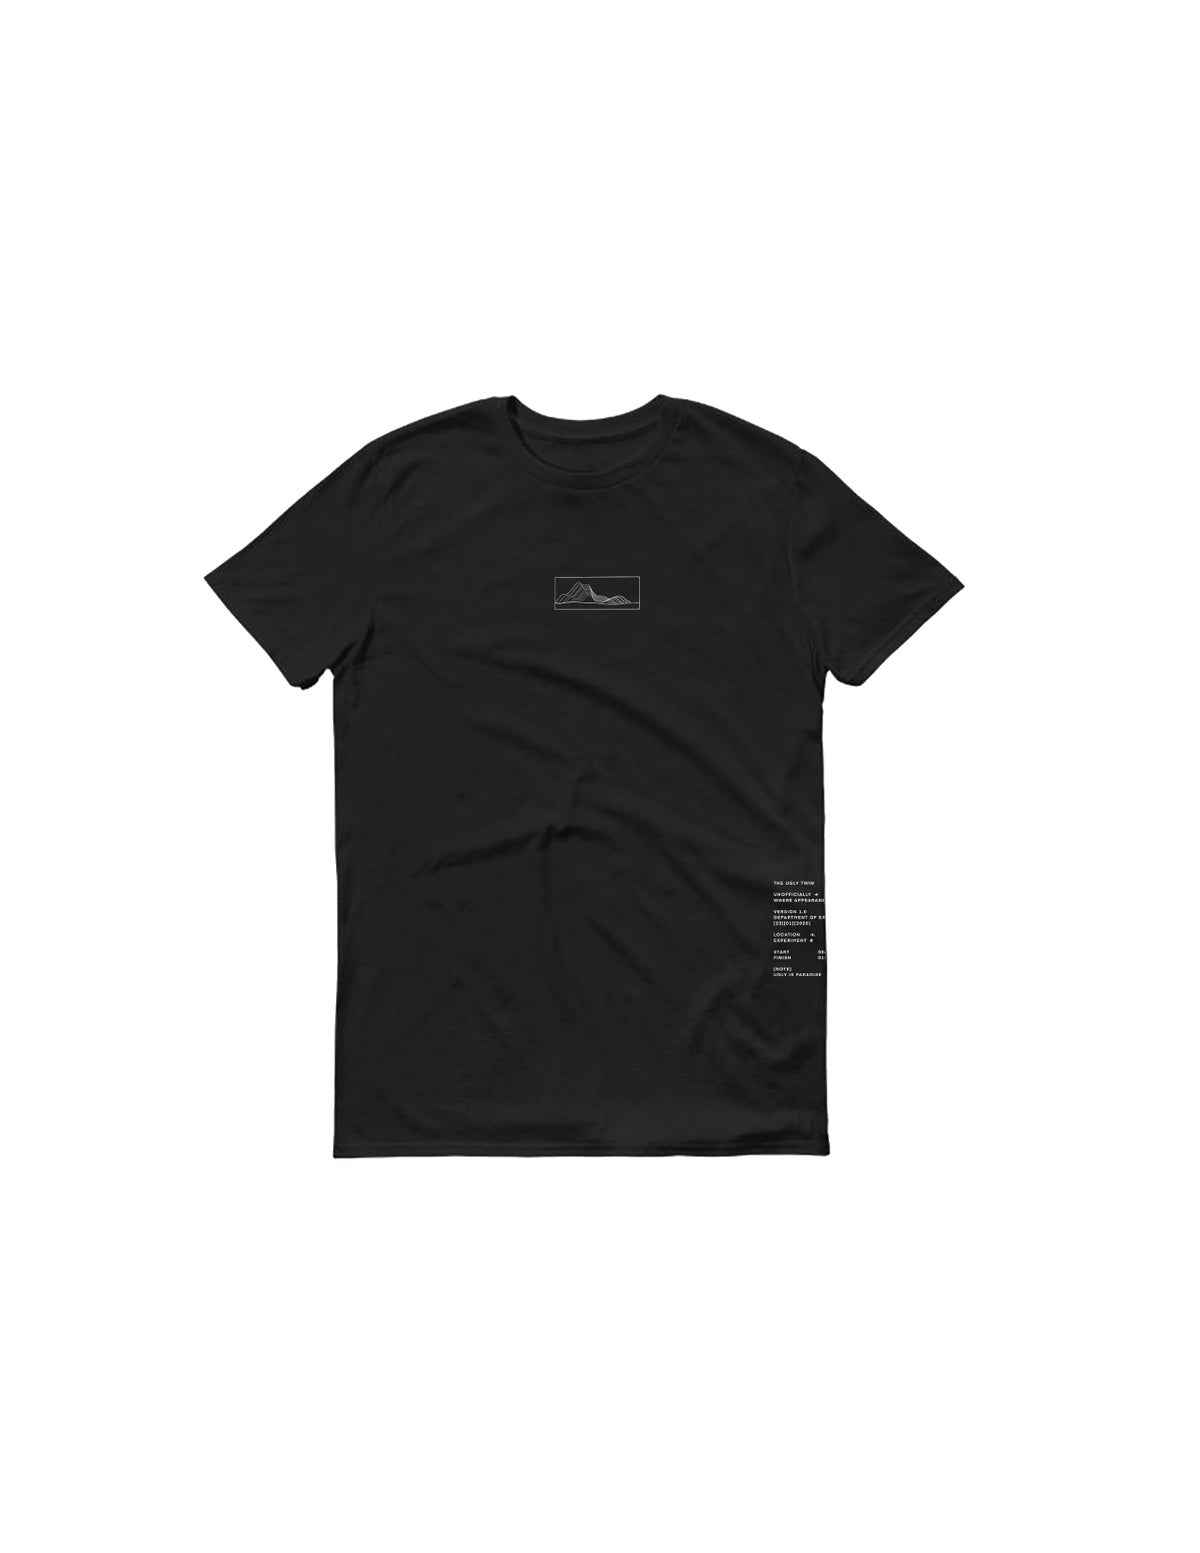 Image of Experiment0904 x Glitch Tee